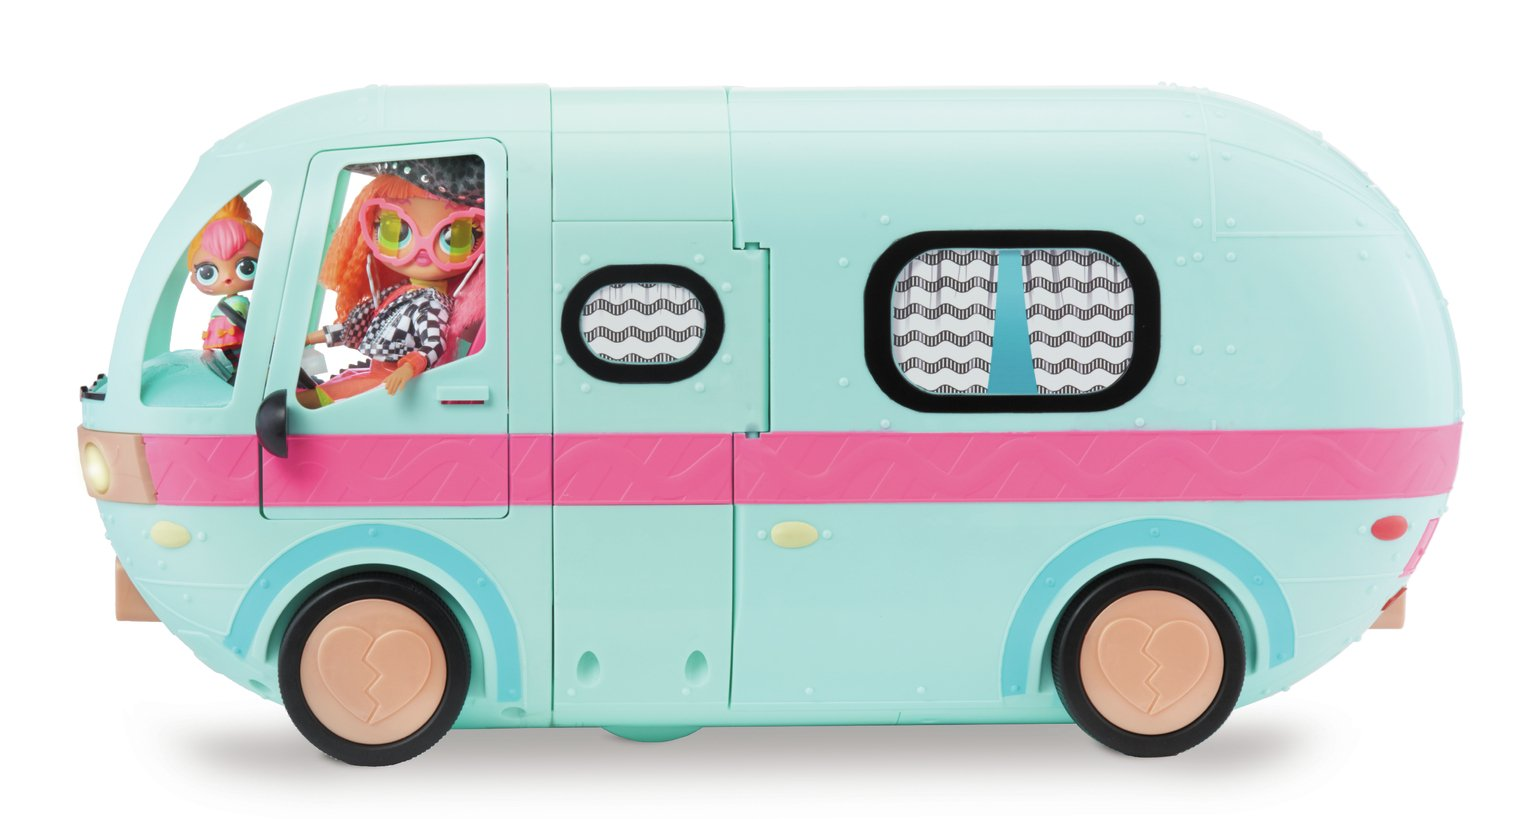 LOL Surprise 2-in-1 Glamper Fashion Camper with 55 Surprises